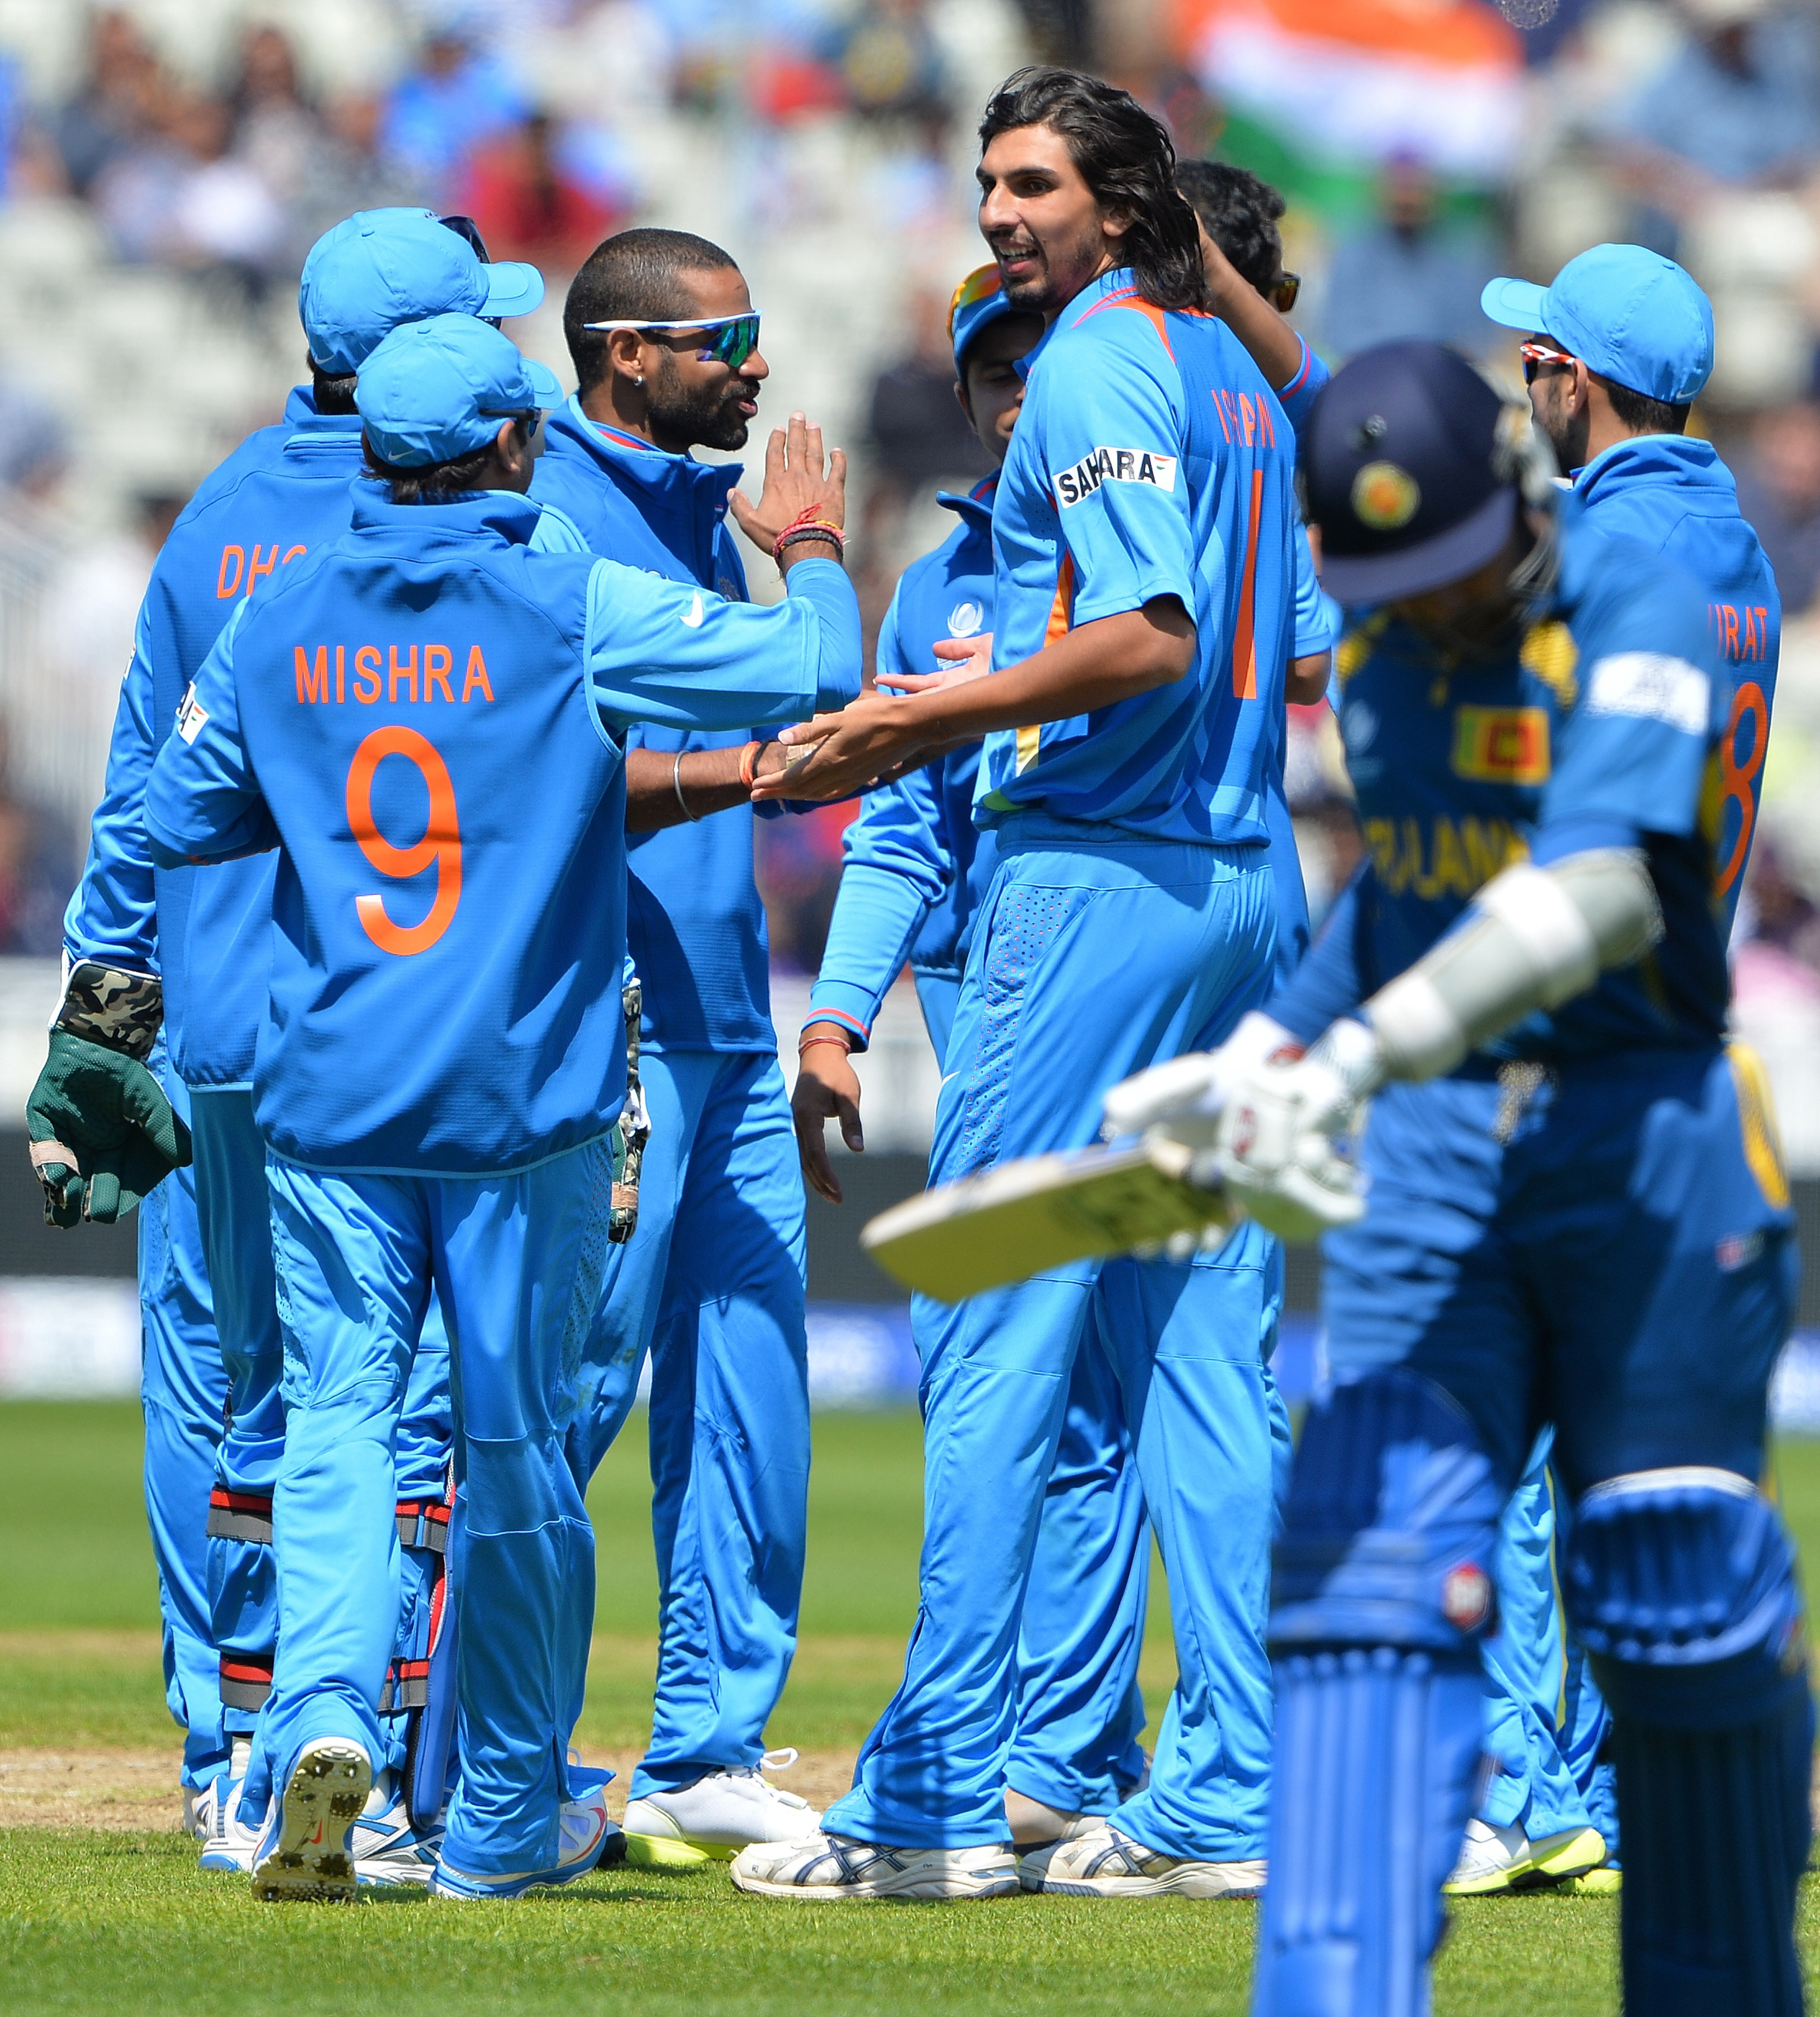 icc champions trophy india beat sri lanka by 5 wickets in